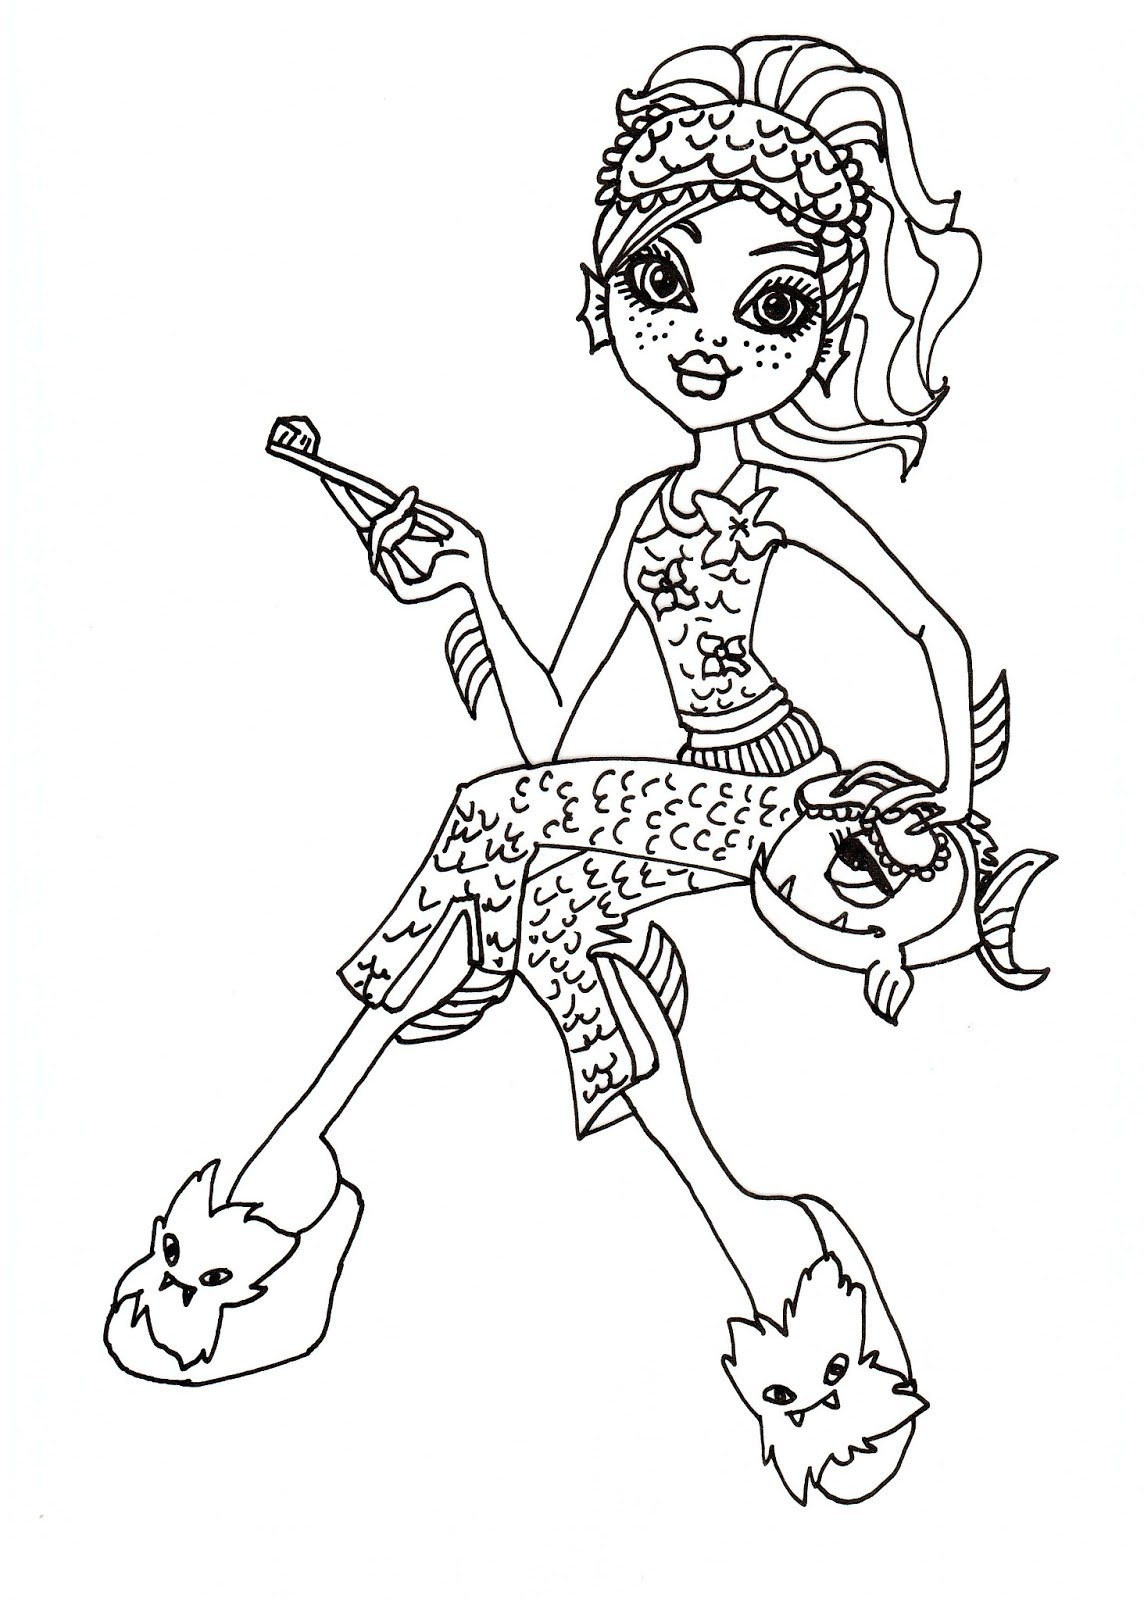 baby lagoona blue coloring pages - photo#17